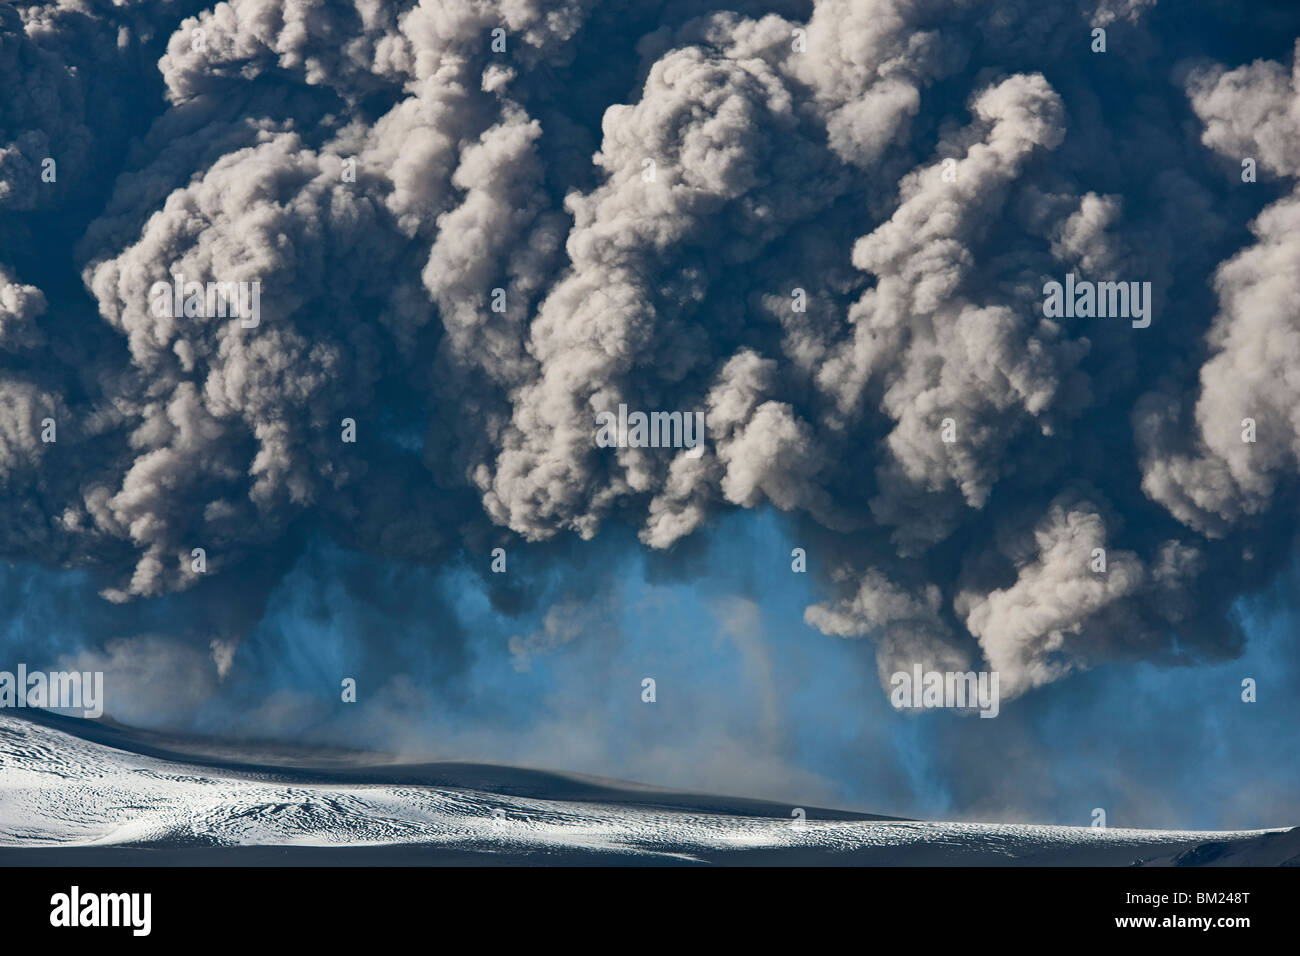 Ash cloud from the Eyjafjallajokull eruption in Iceland - Stock Image